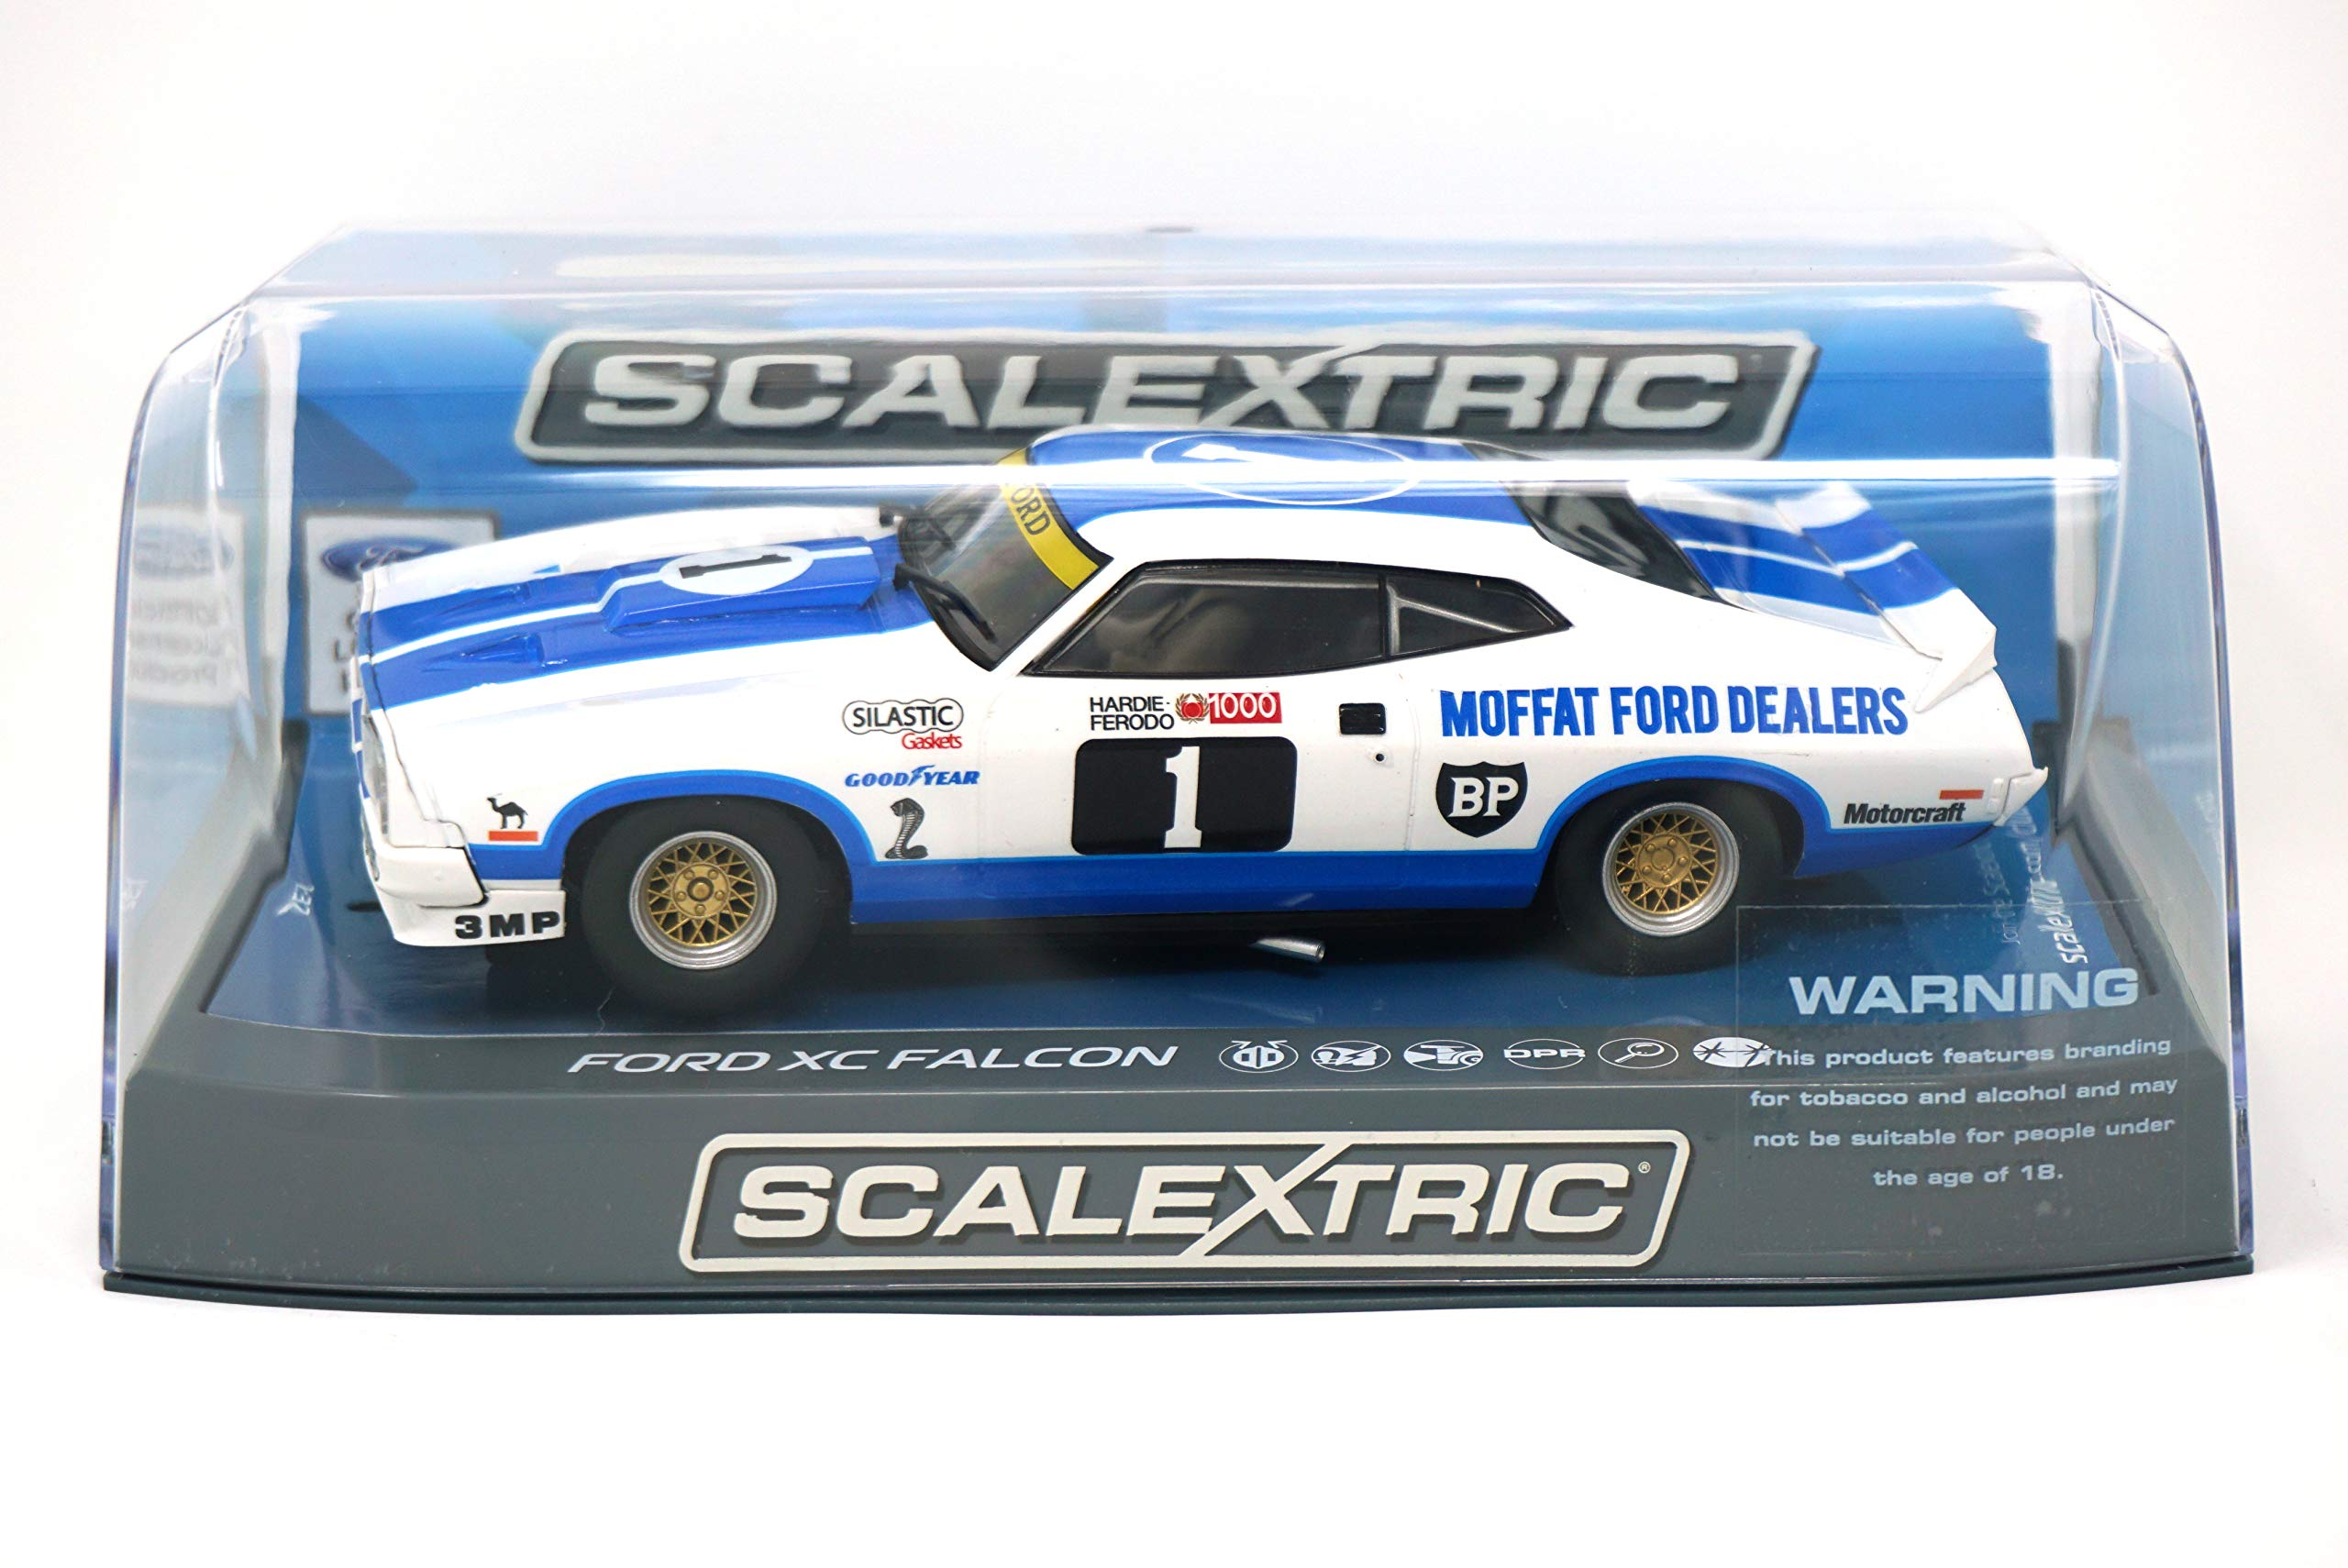 Scalextric C3741 Ford Xc Falcon Moffat Dealers 1978 Bathurst 1000 Slot Car (1: 32 Scale)